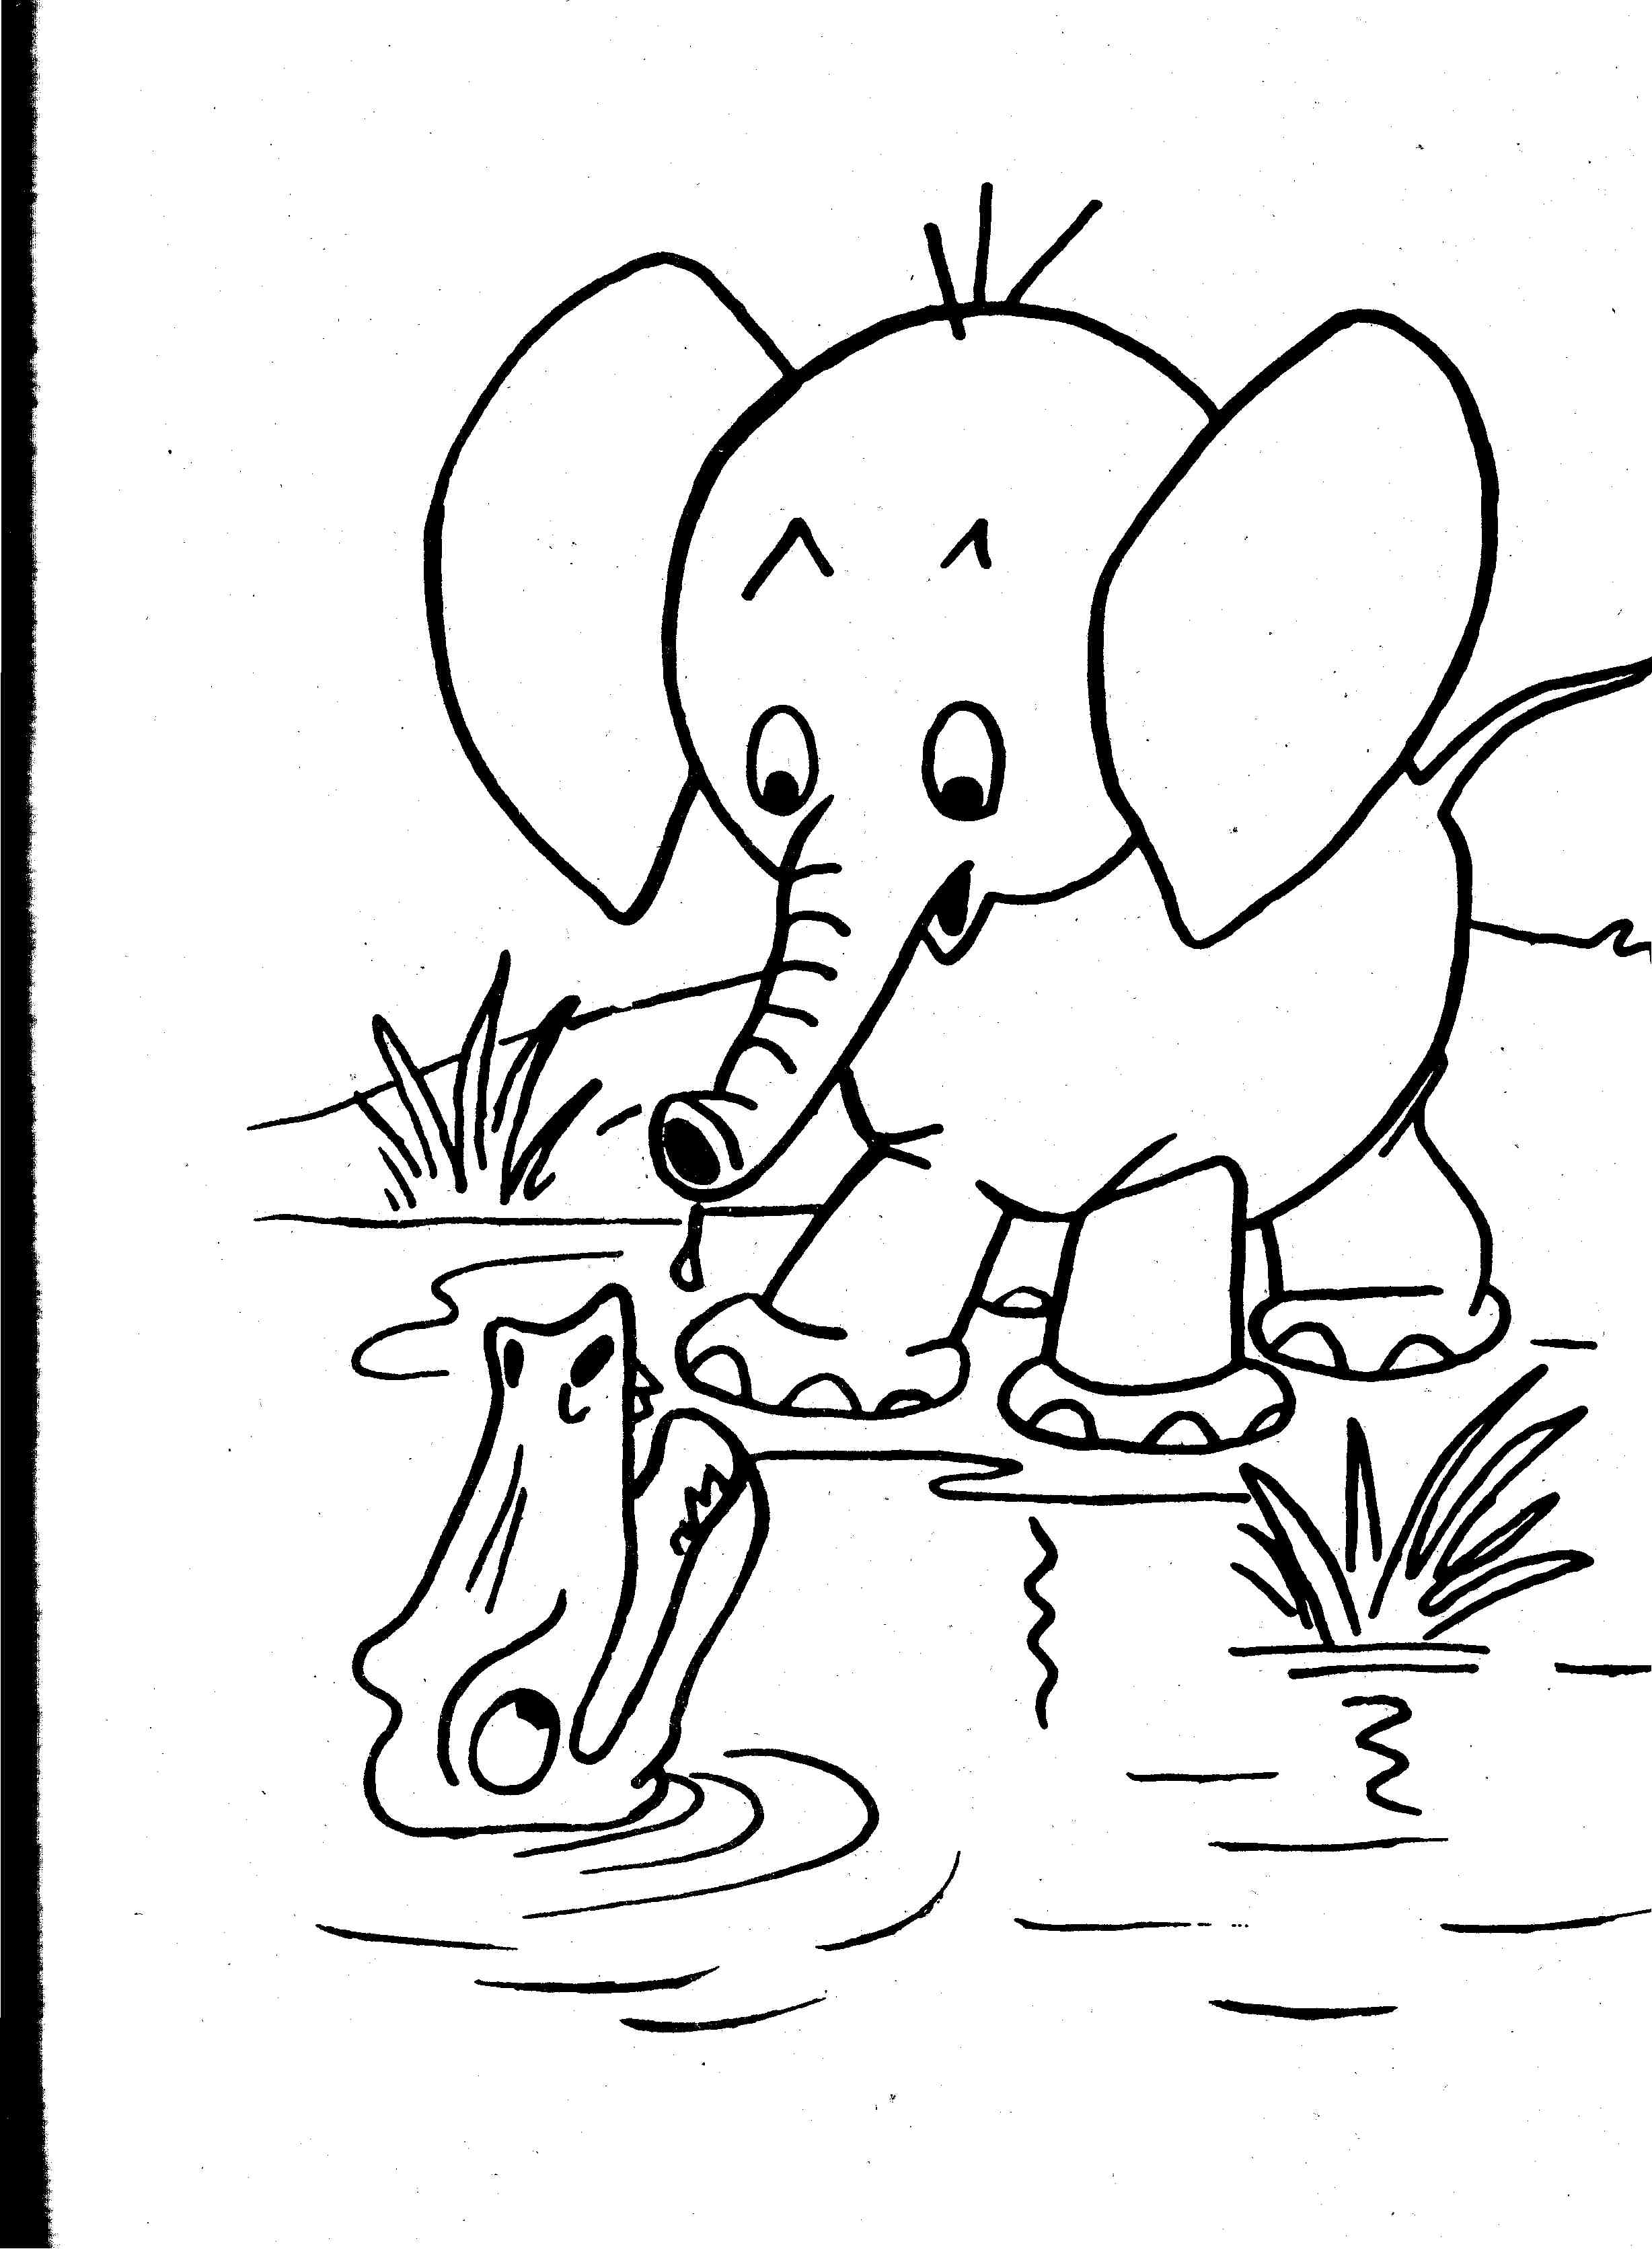 free coloring pages of realistic animals animal drawing outlines at getdrawings free download of pages coloring realistic free animals